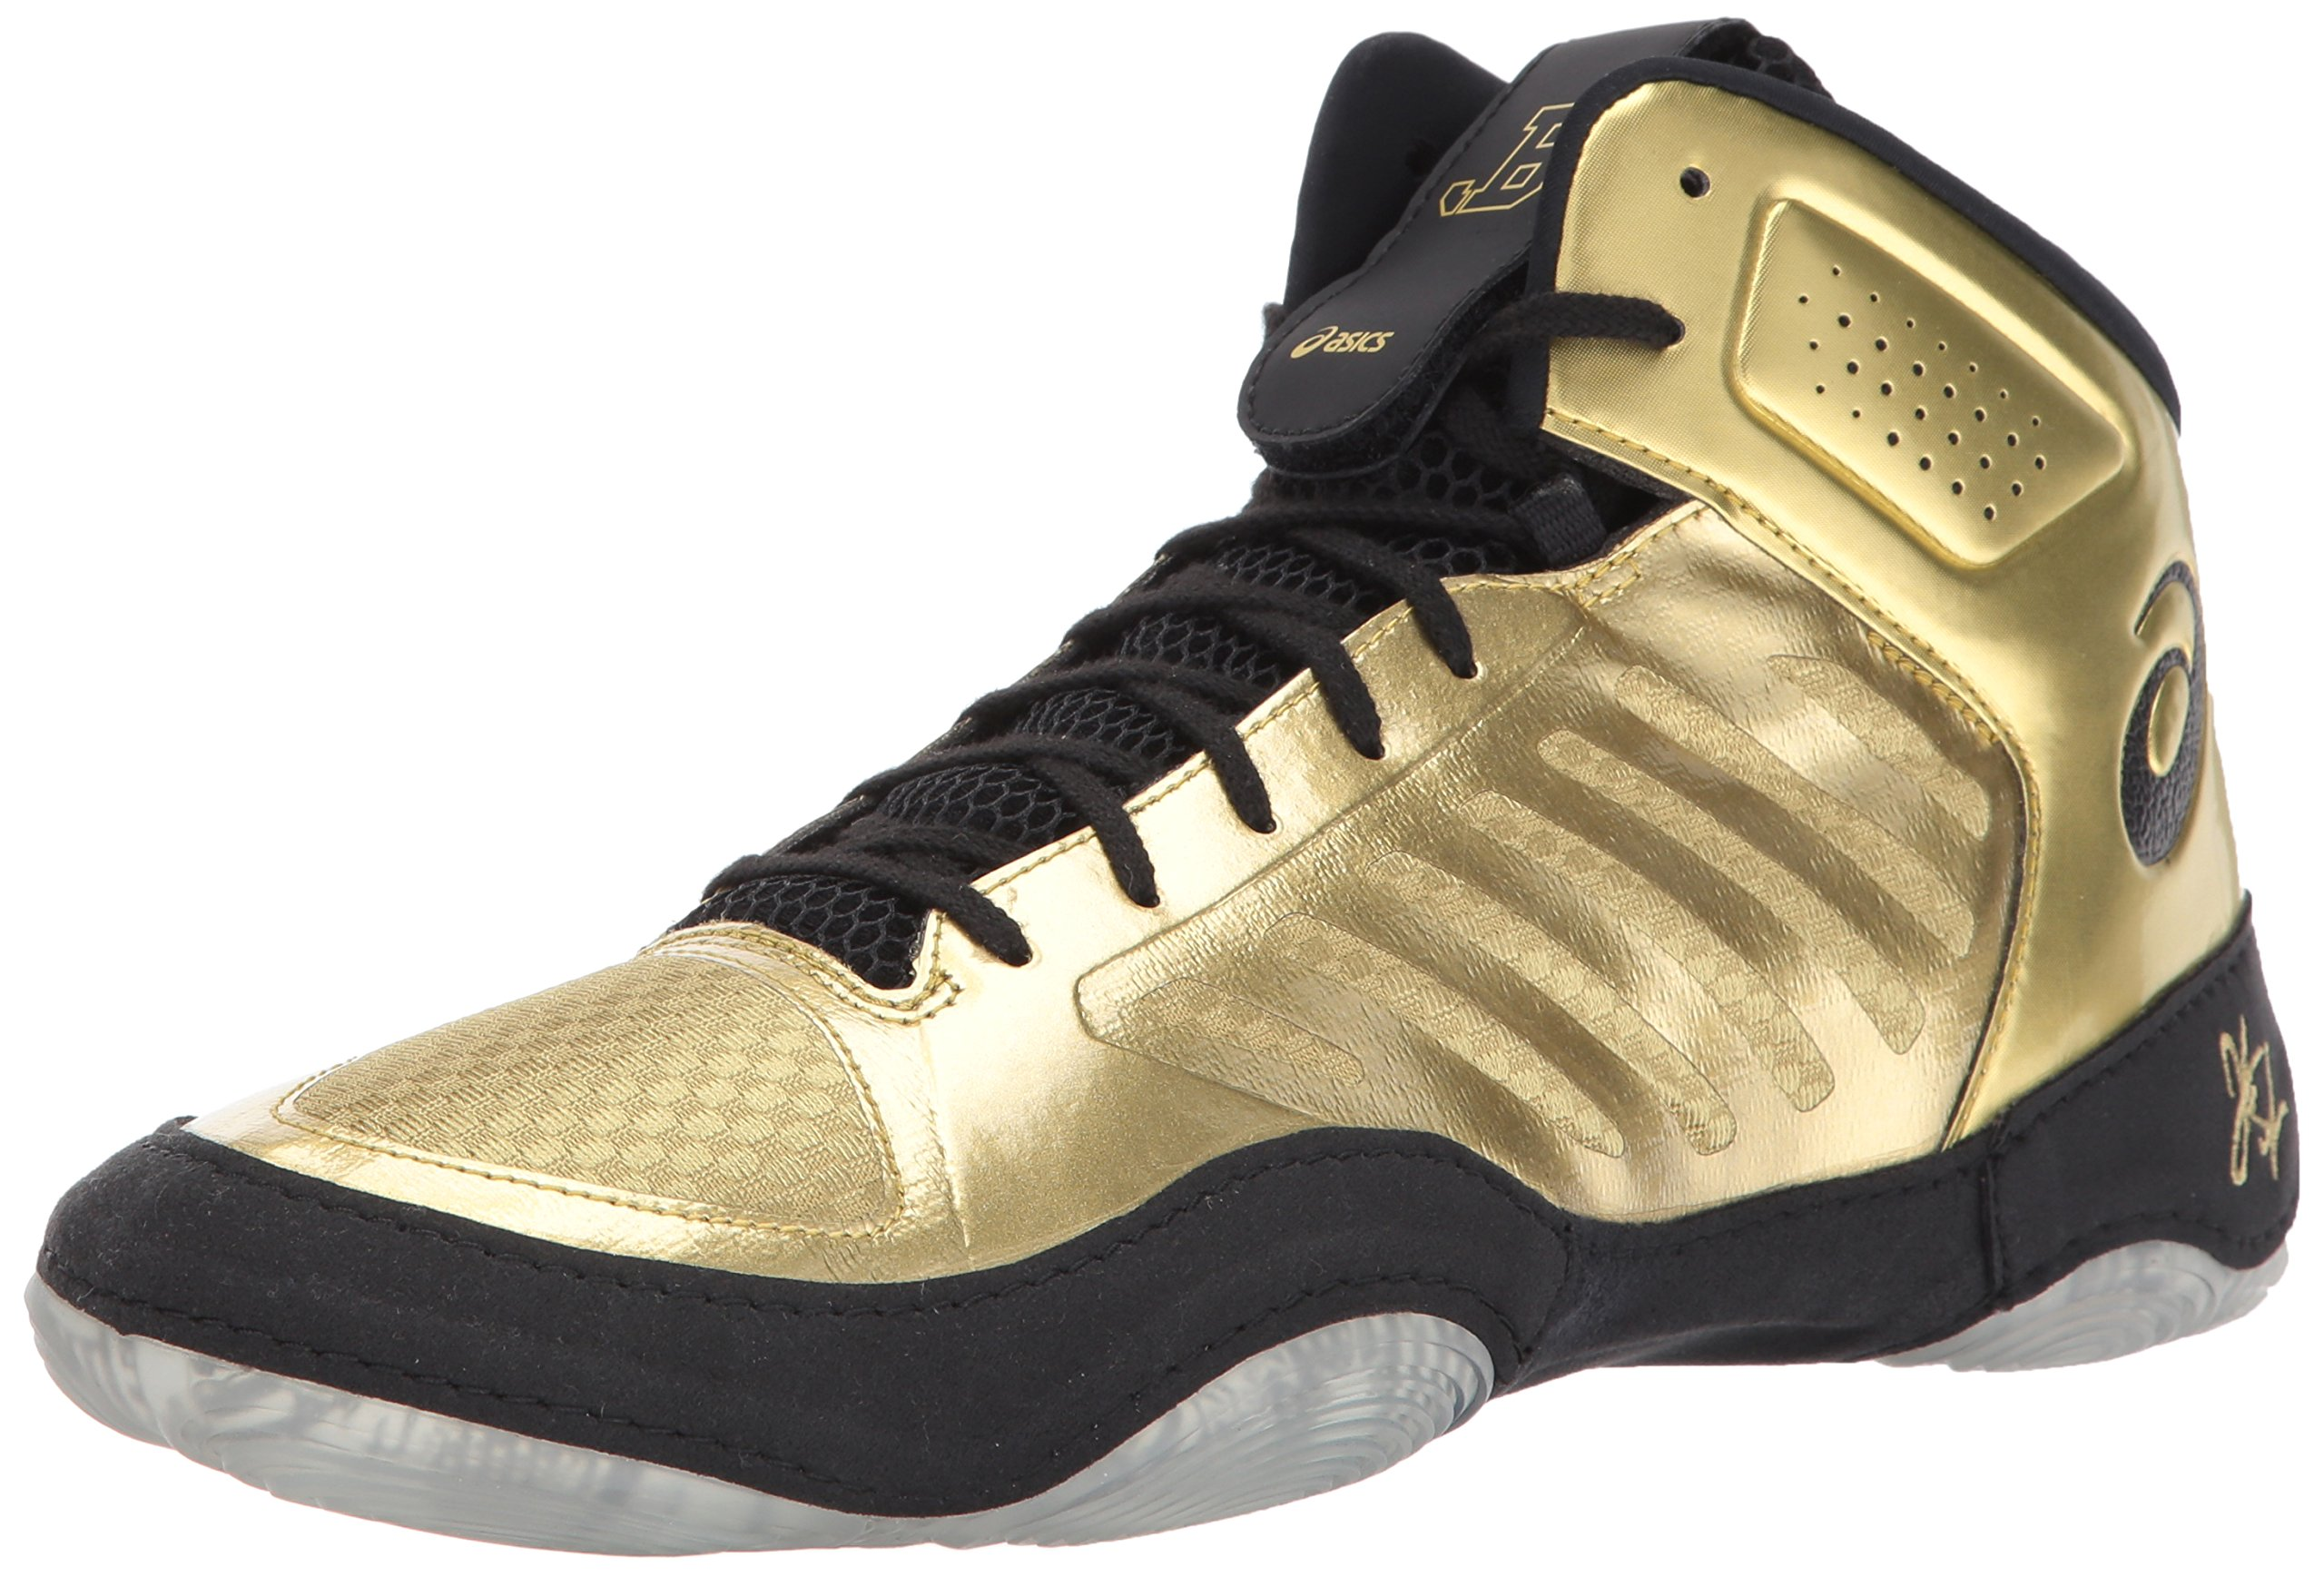 ASICS Men's JB Elite III Wrestling Shoe, Rich Gold/Black, 9.5 Medium US